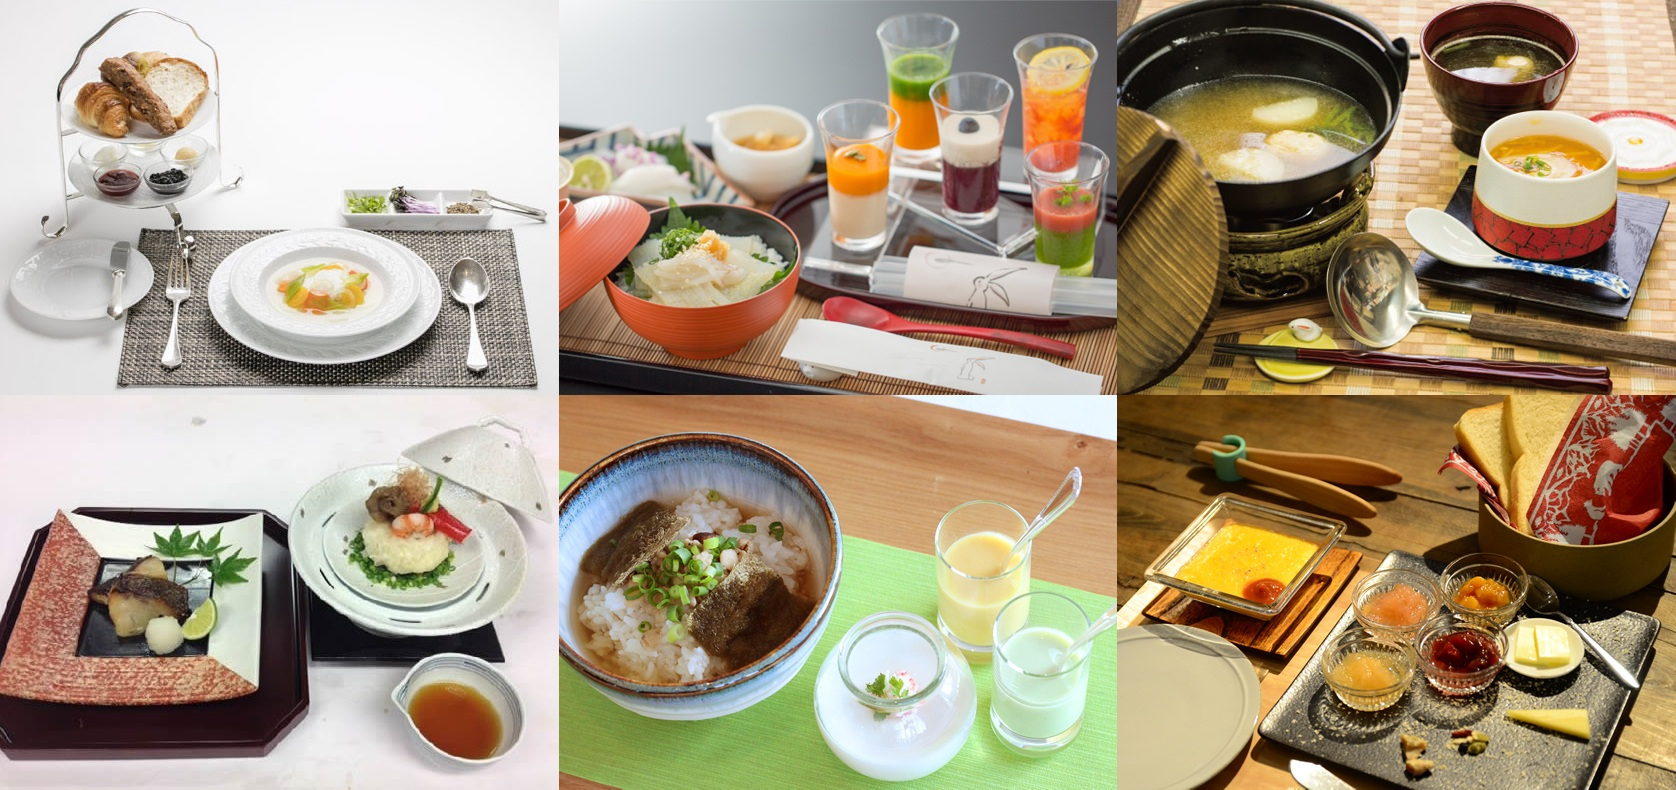 Asagohan Festival 2015: Japan's Best Breakfasts